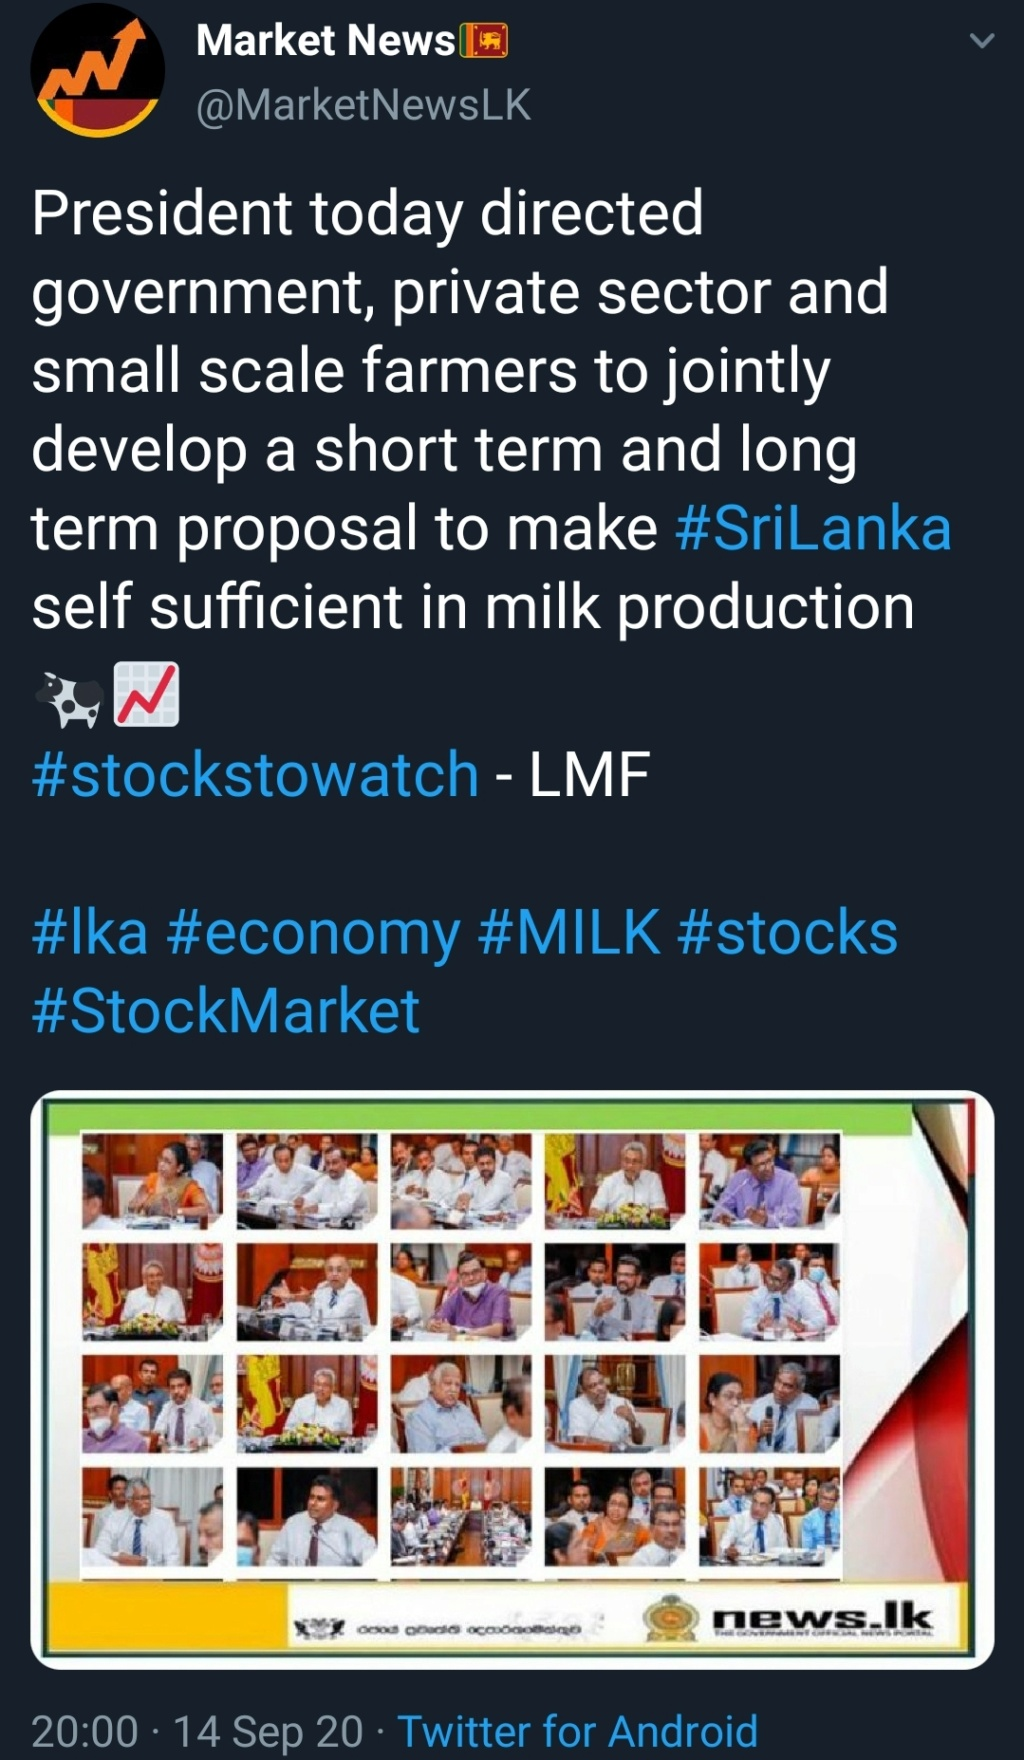 """""""The Lanka Milk Foods Group is committed towards meeting stakeholder needs through strategic expansion, quality improvement mechanisms and national self-sufficiency in milk production and we embark in a 3 billion dairy farm. Scree174"""